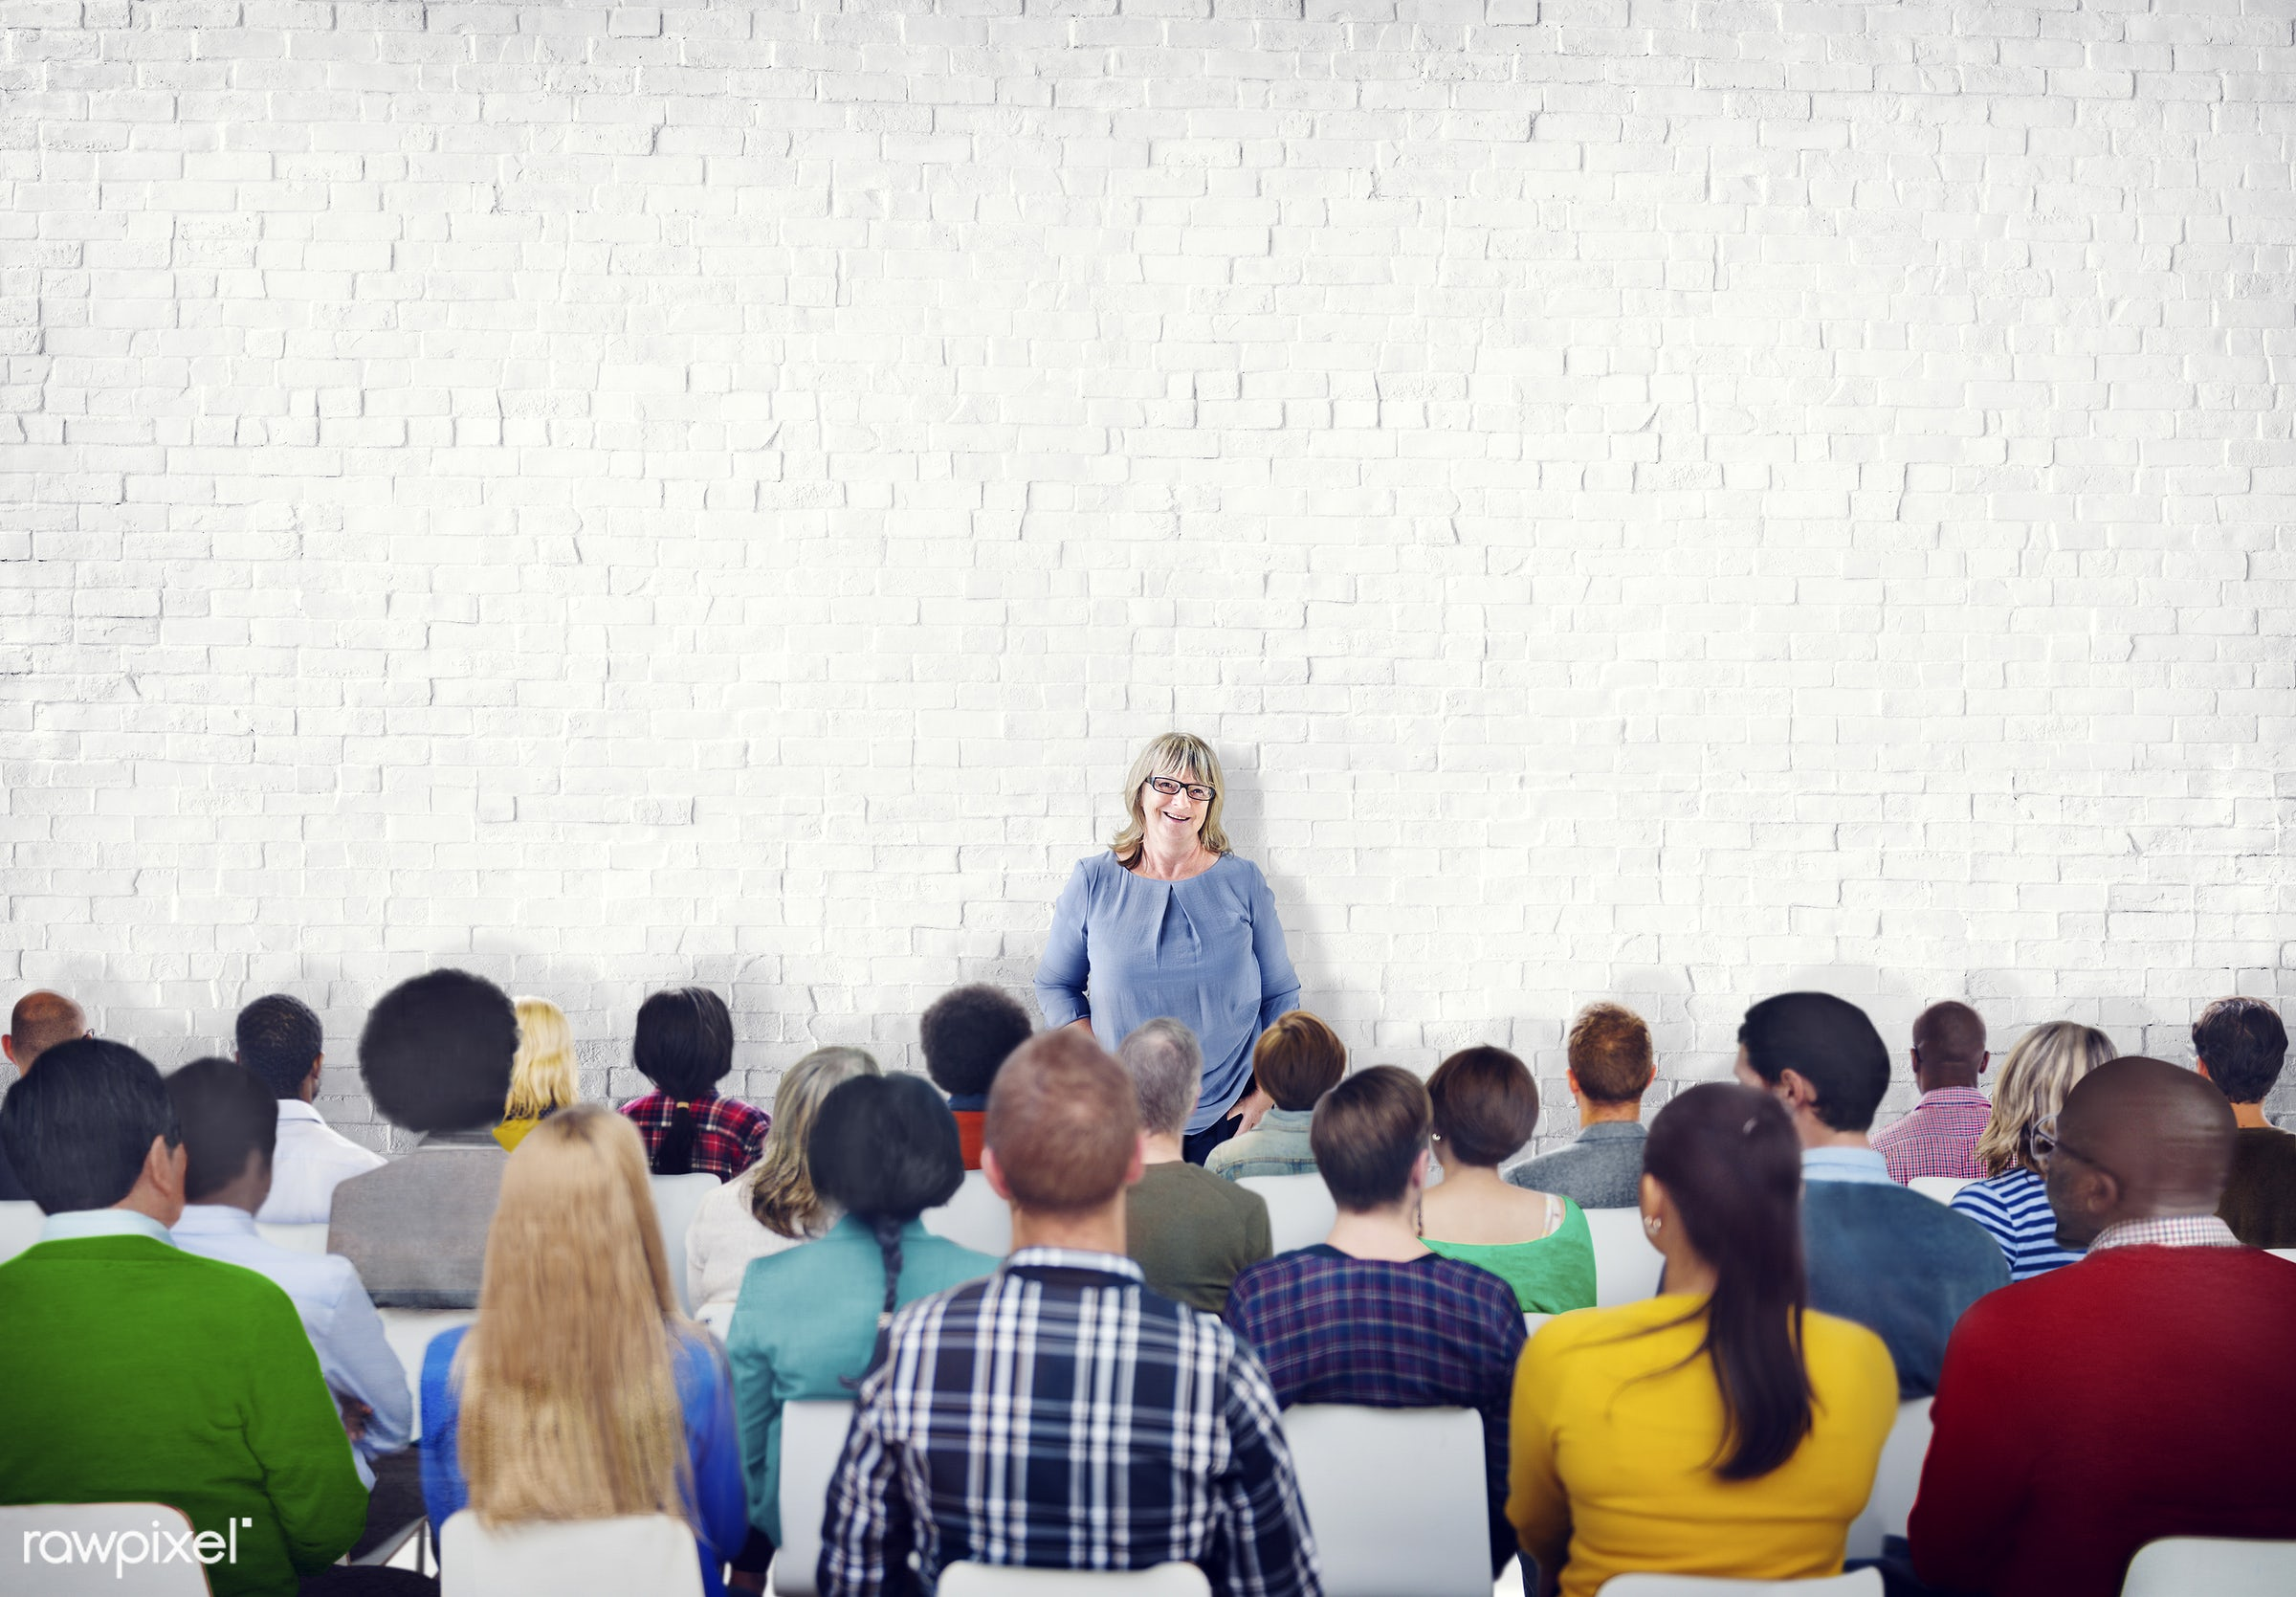 contemporary, white, audience, brick wall, bricks, business, colleagues, colorful, community, conference, convention, copy...